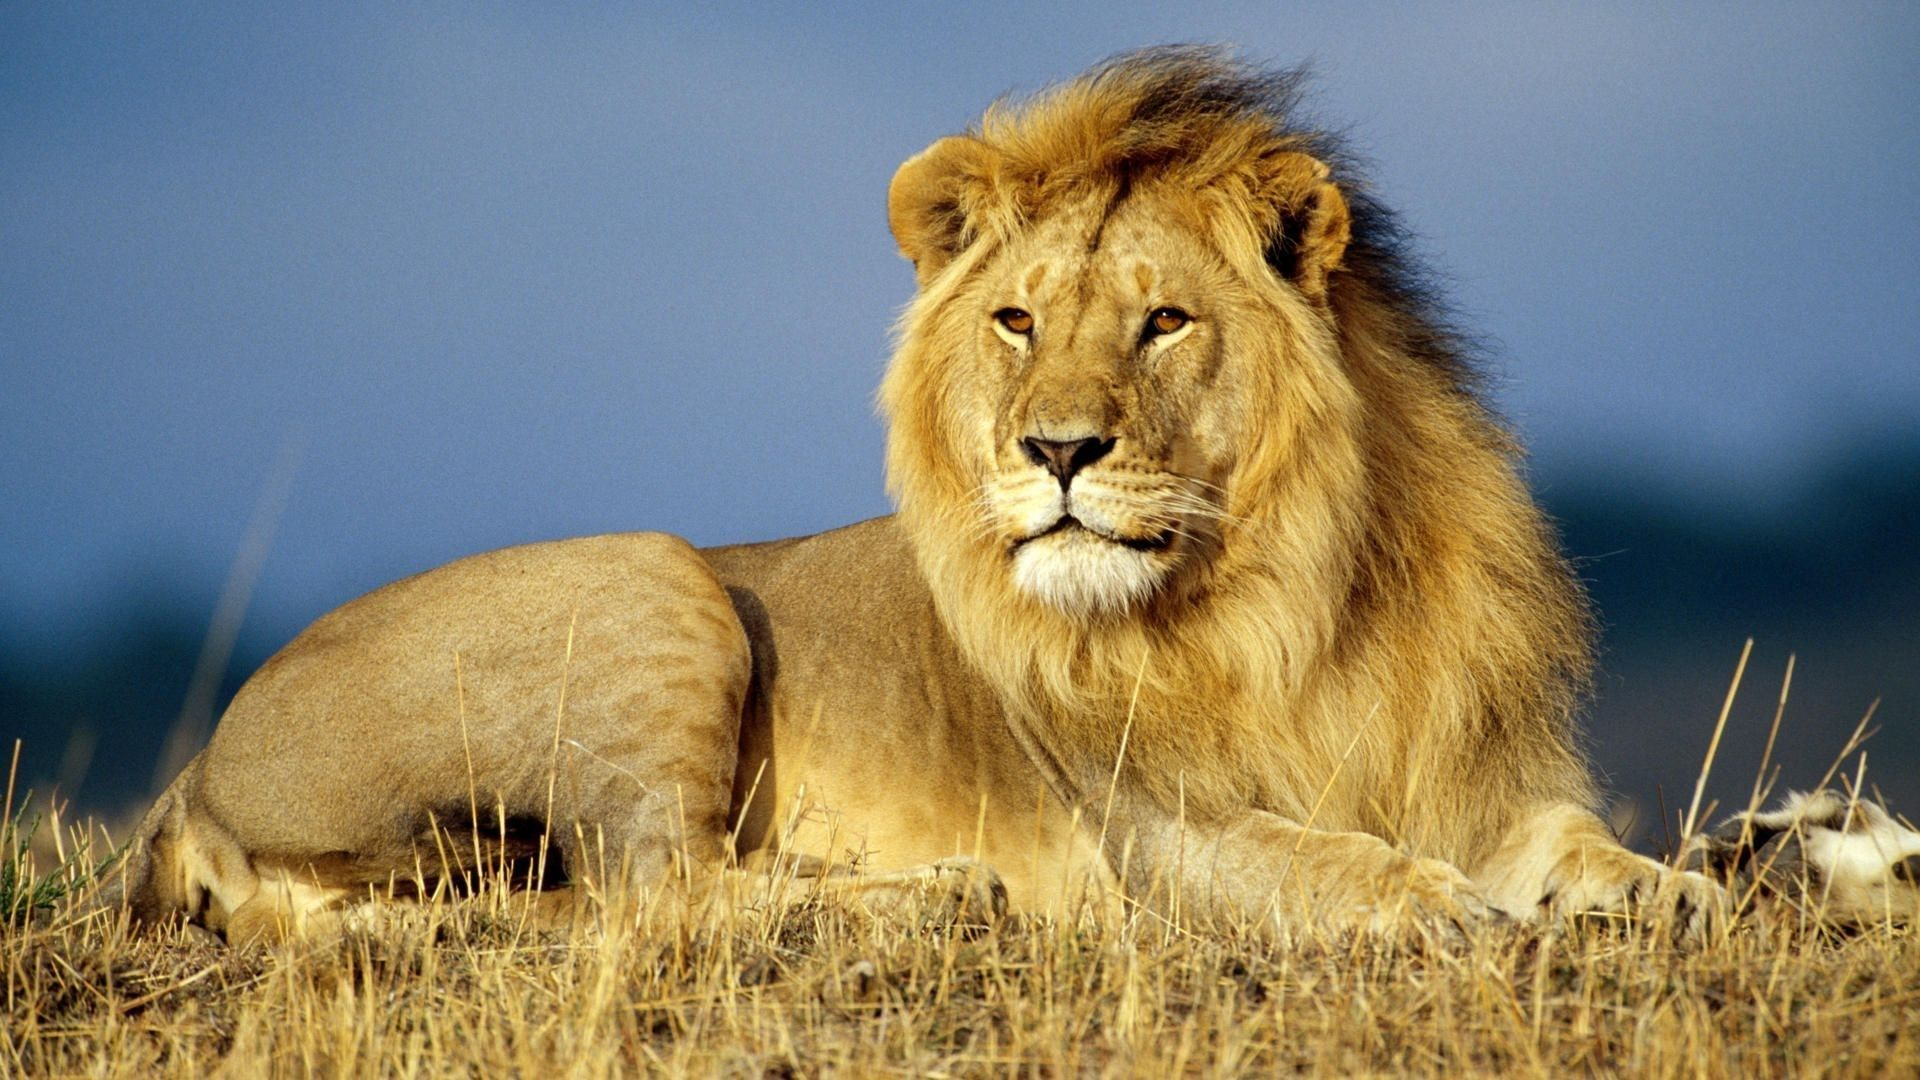 African Lion 1080p HD Wallpaper Iphone wallpapers Lion 1920x1080